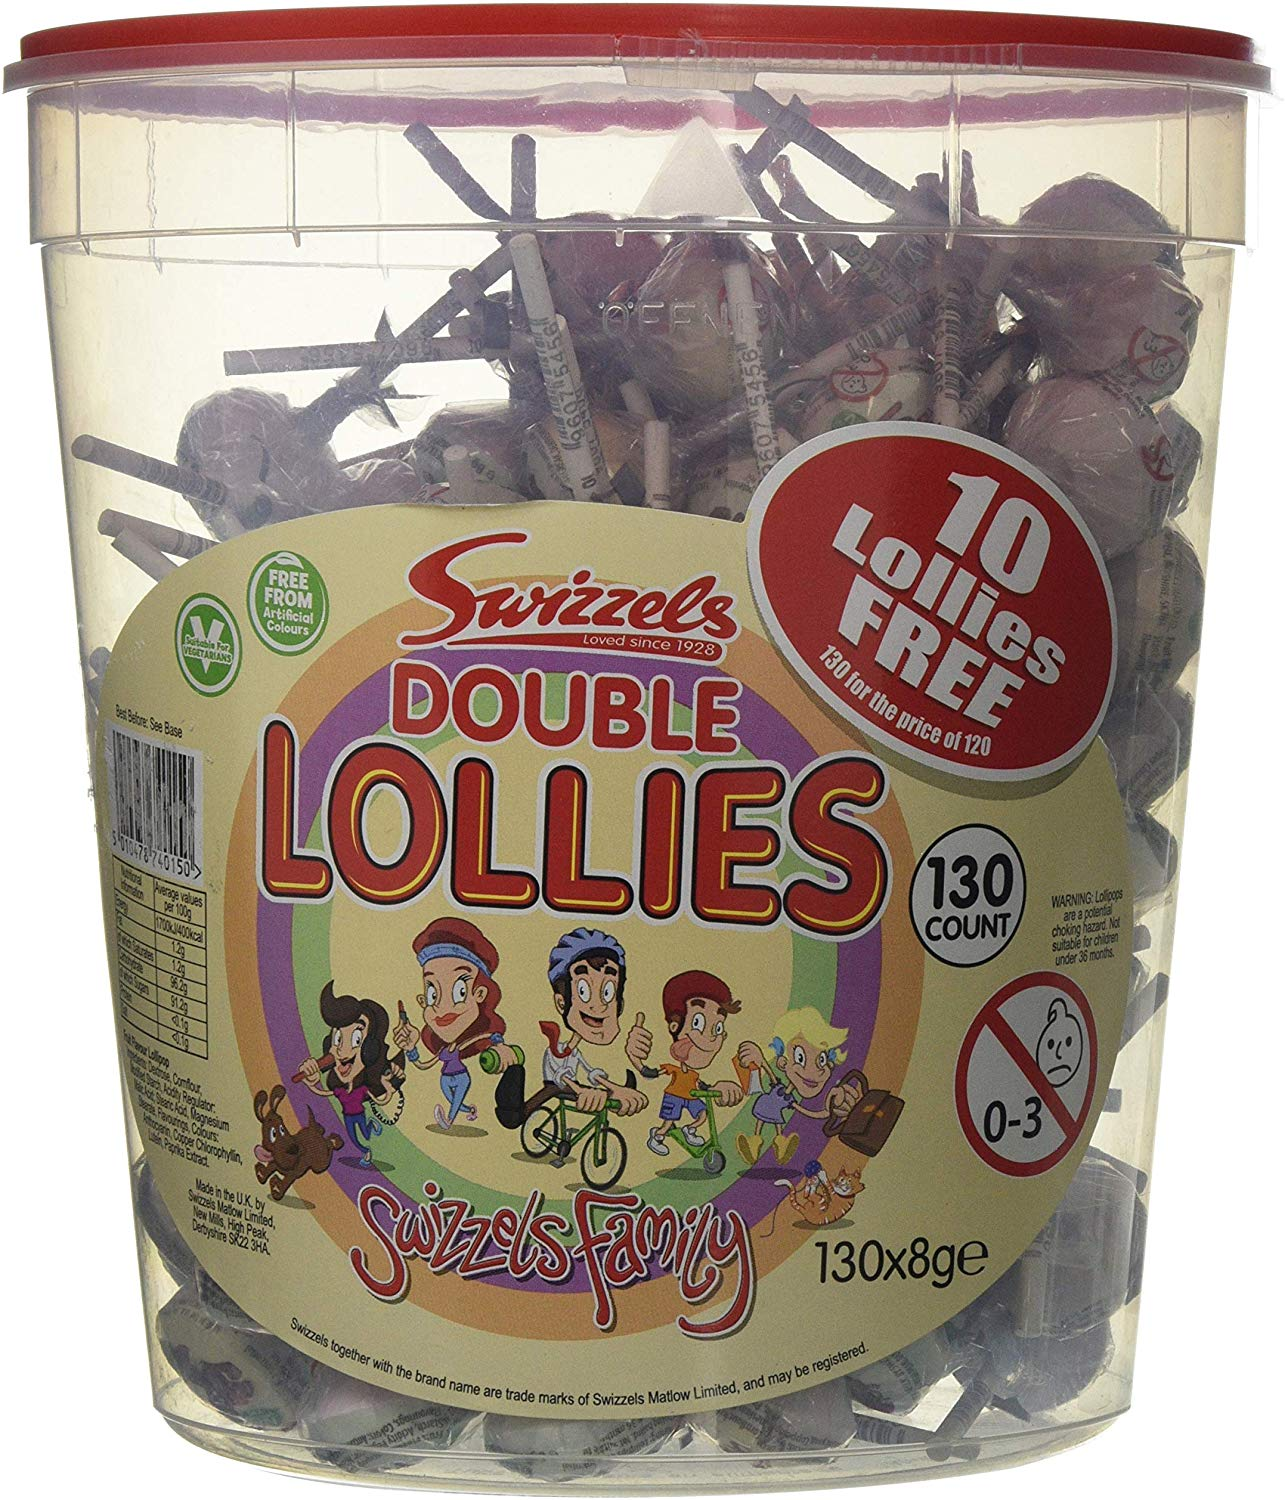 Swizzels Double Lollies Original (tub of 120) £5 Prime